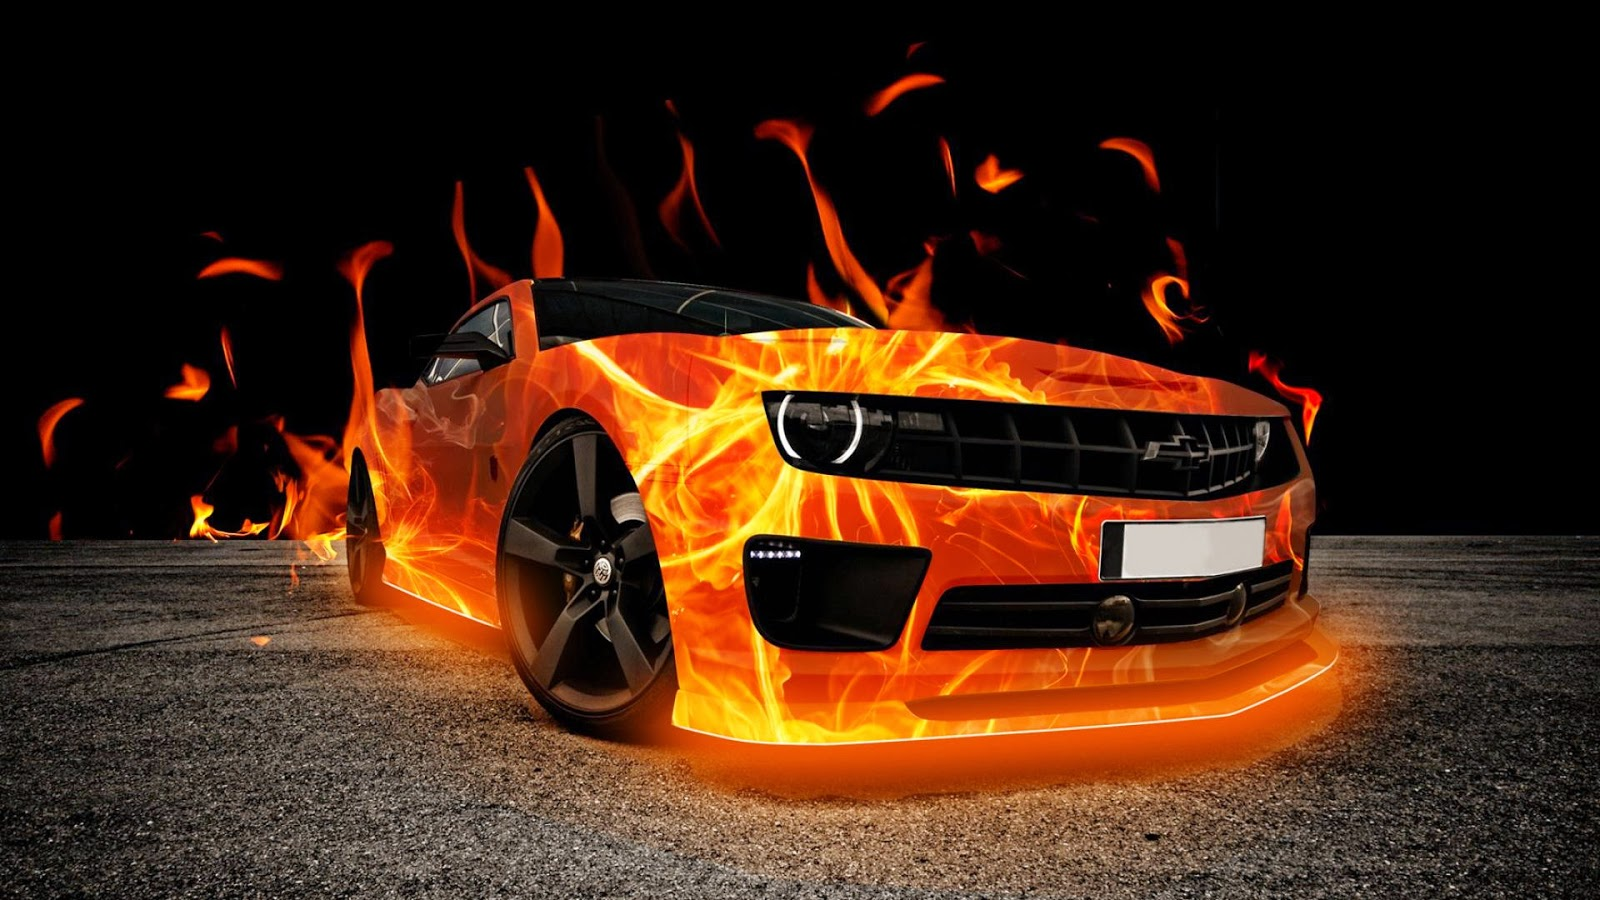 Fire Wallpapers Of Cars For Desktop